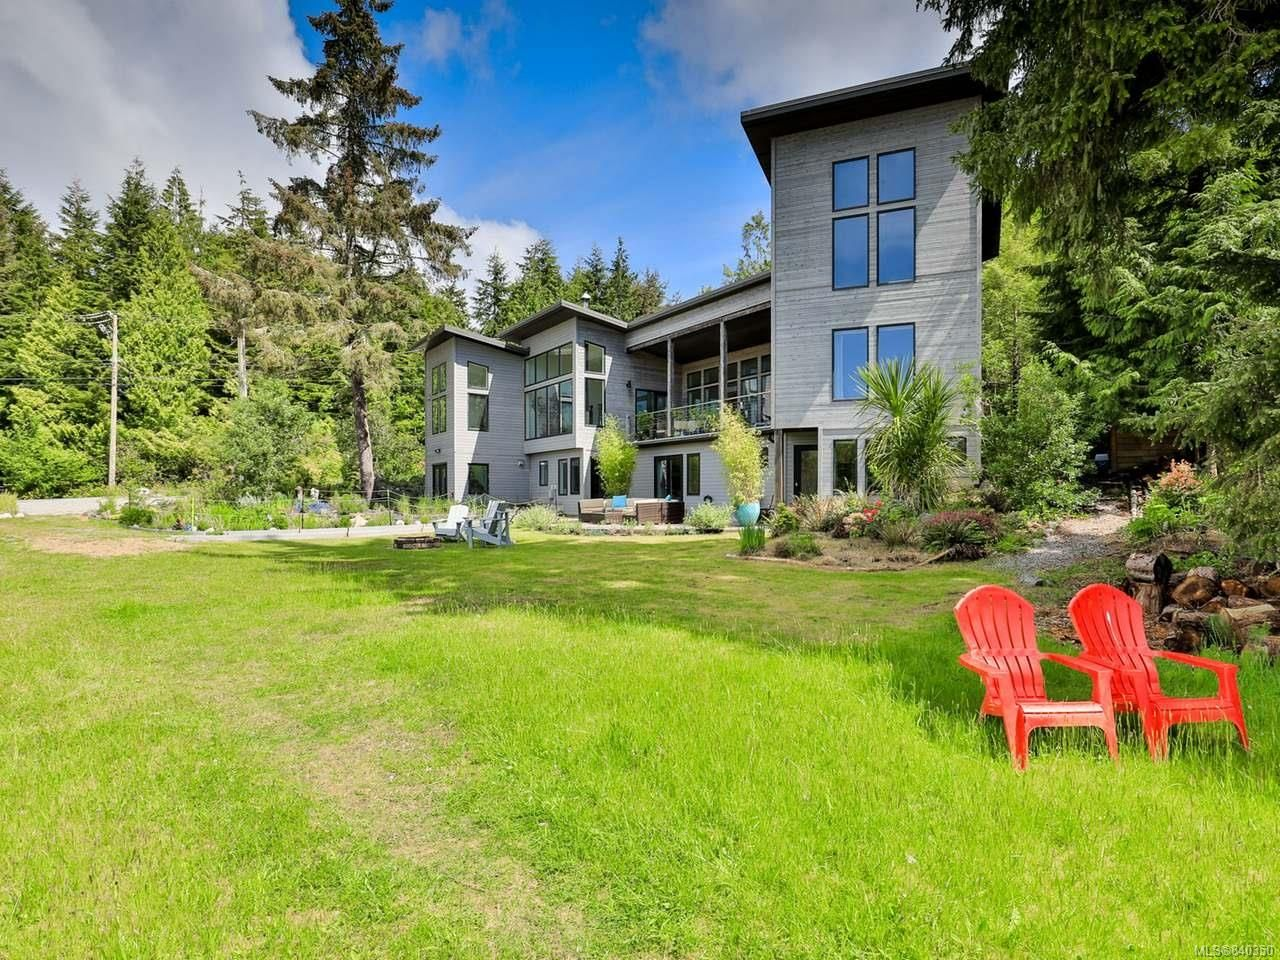 Photo 60: Photos: 1068 Helen Rd in UCLUELET: PA Ucluelet House for sale (Port Alberni)  : MLS®# 840350